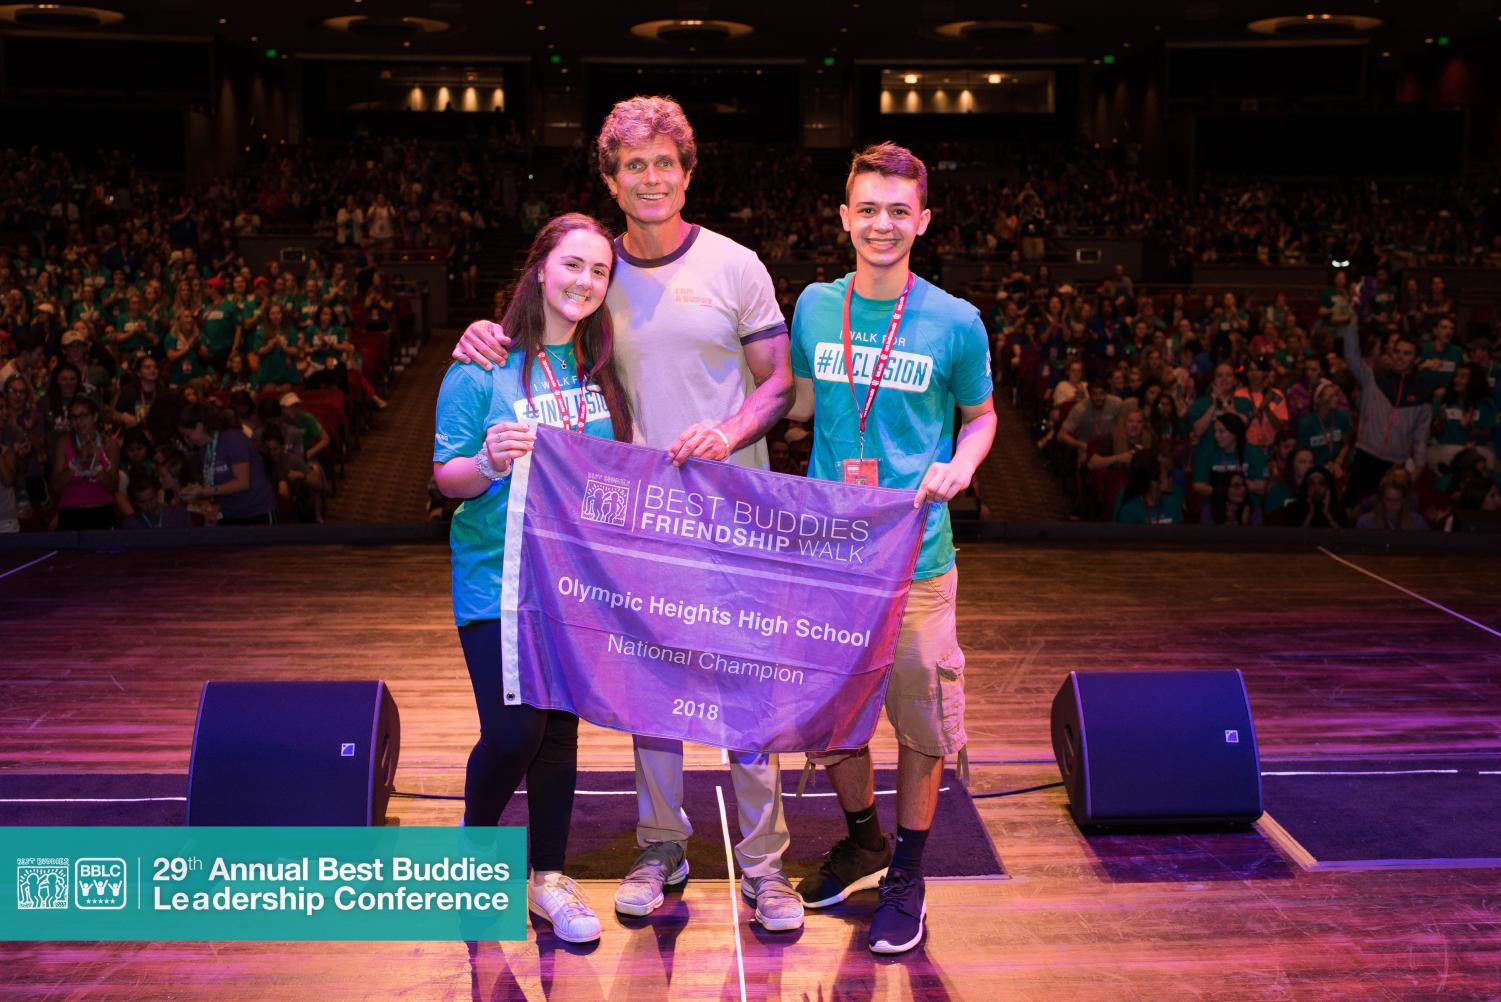 Olympic Heights Best Buddies Club officers Courtney Reiff (left) and Jacob Pasternack (right) accept a banner recognizing the OH chapter as the top fundraiser in the nation from Anthony Kennedy Shriver, Best Buddies International founder.